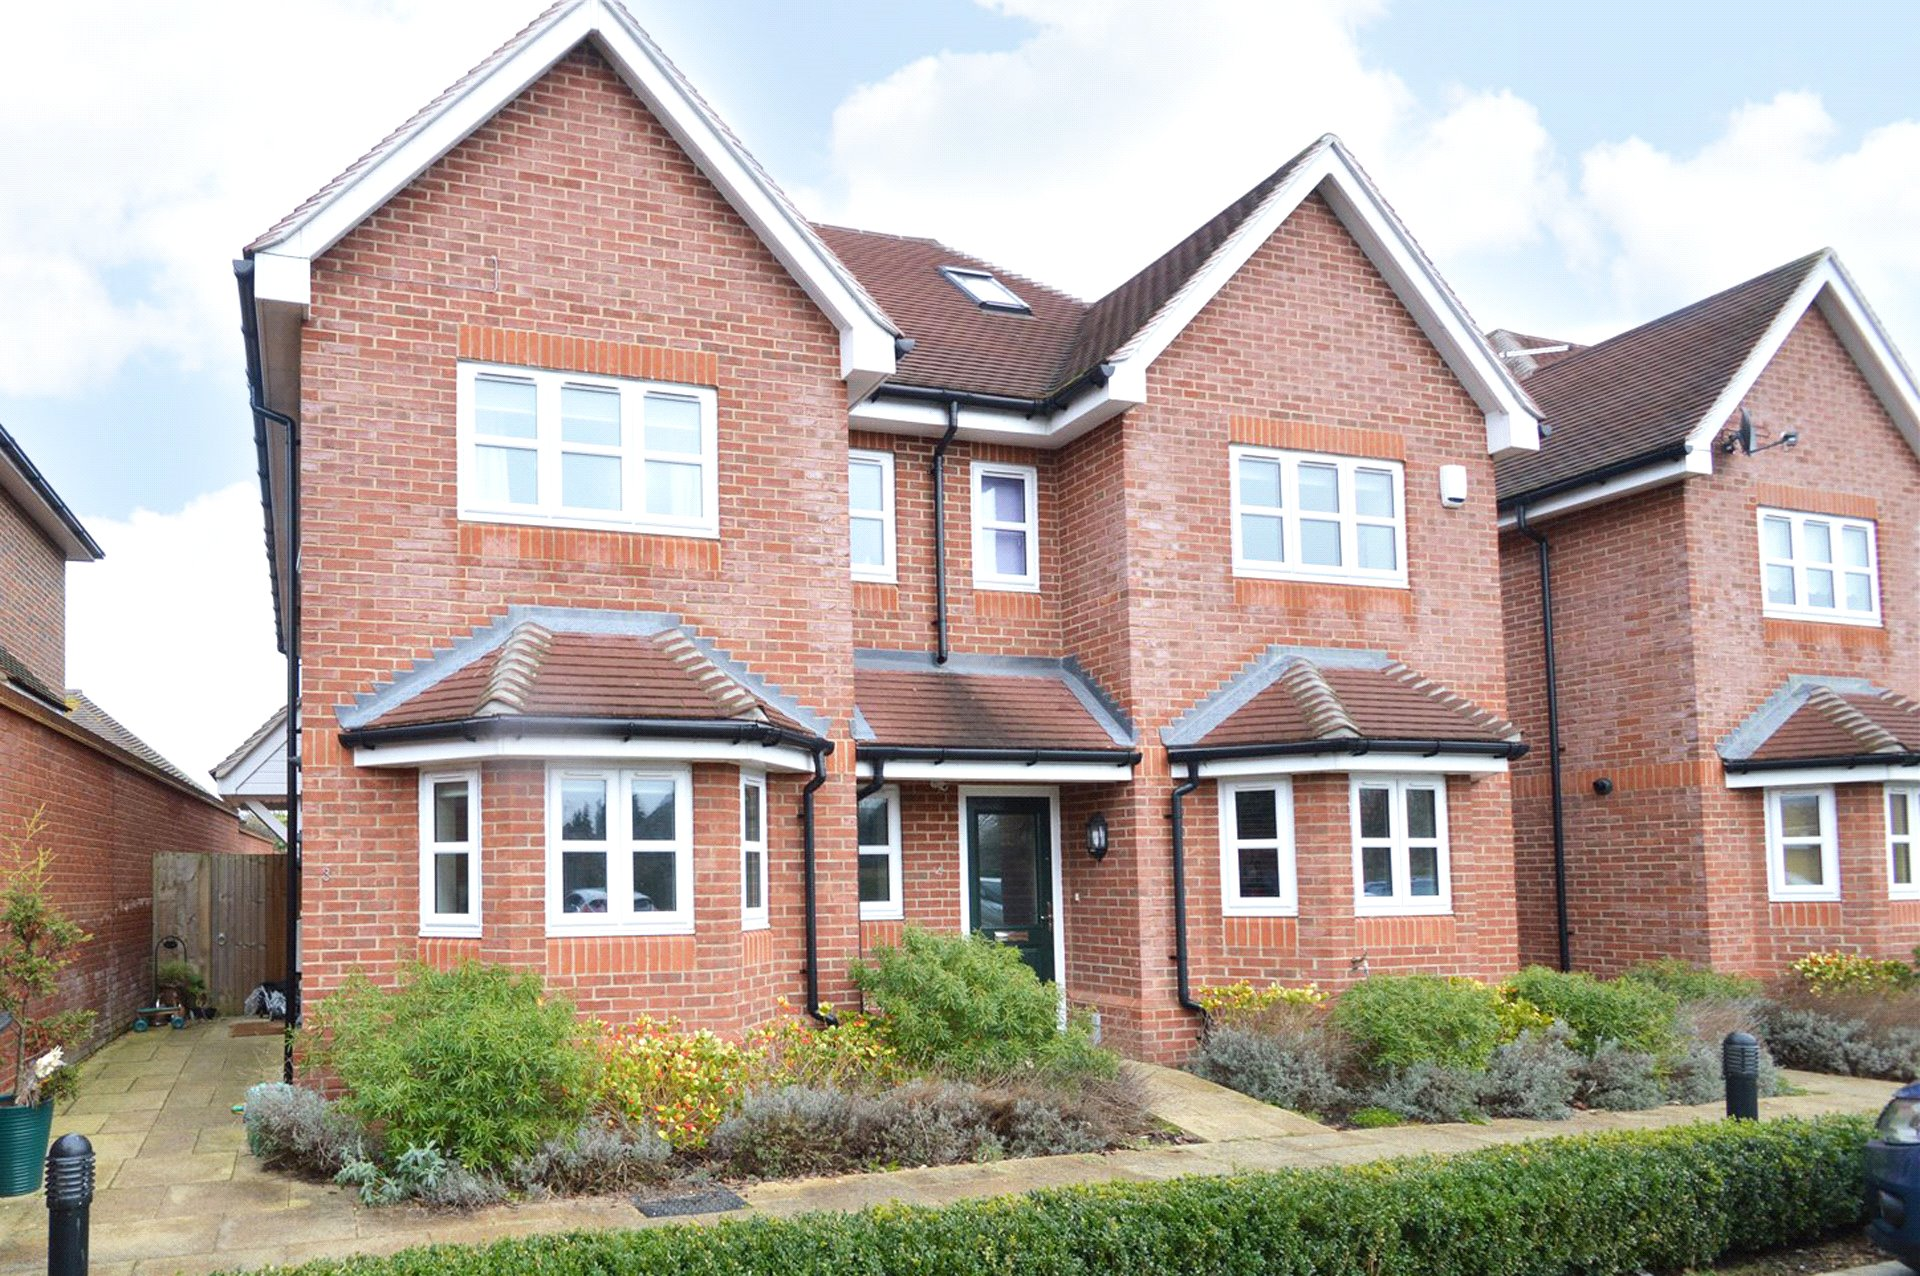 3 Bedrooms Semi Detached House for sale in Longwood Mews, Maidenhead, Berkshire, SL6